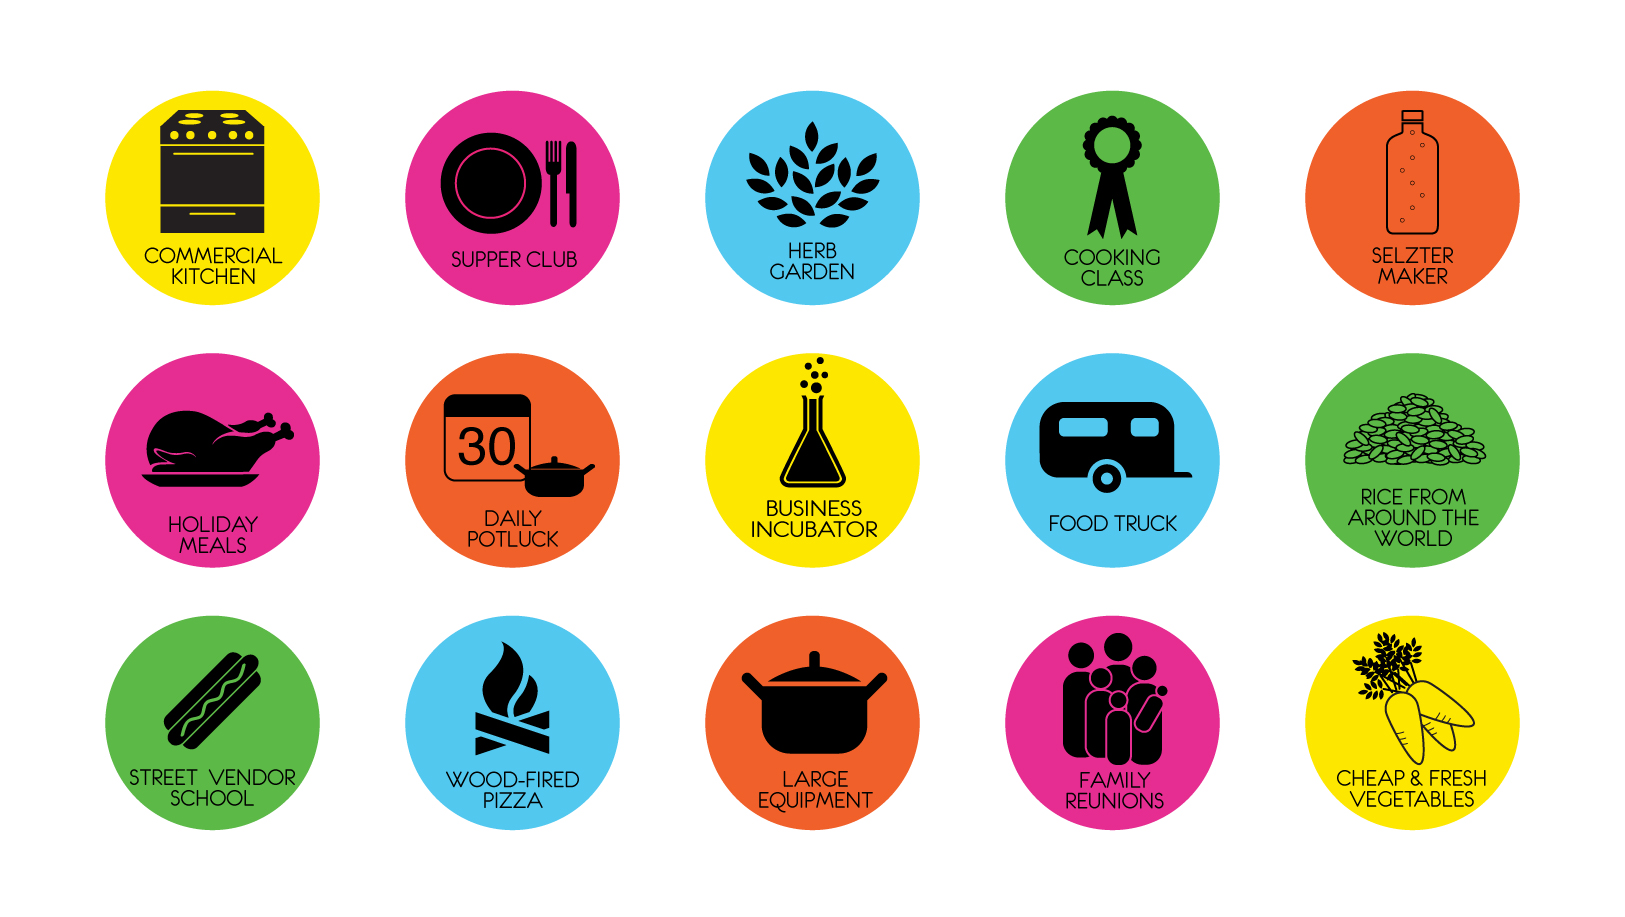 Some of the idea icon magnets for brainstorming what a PUBLIC KITCHEN might be like.